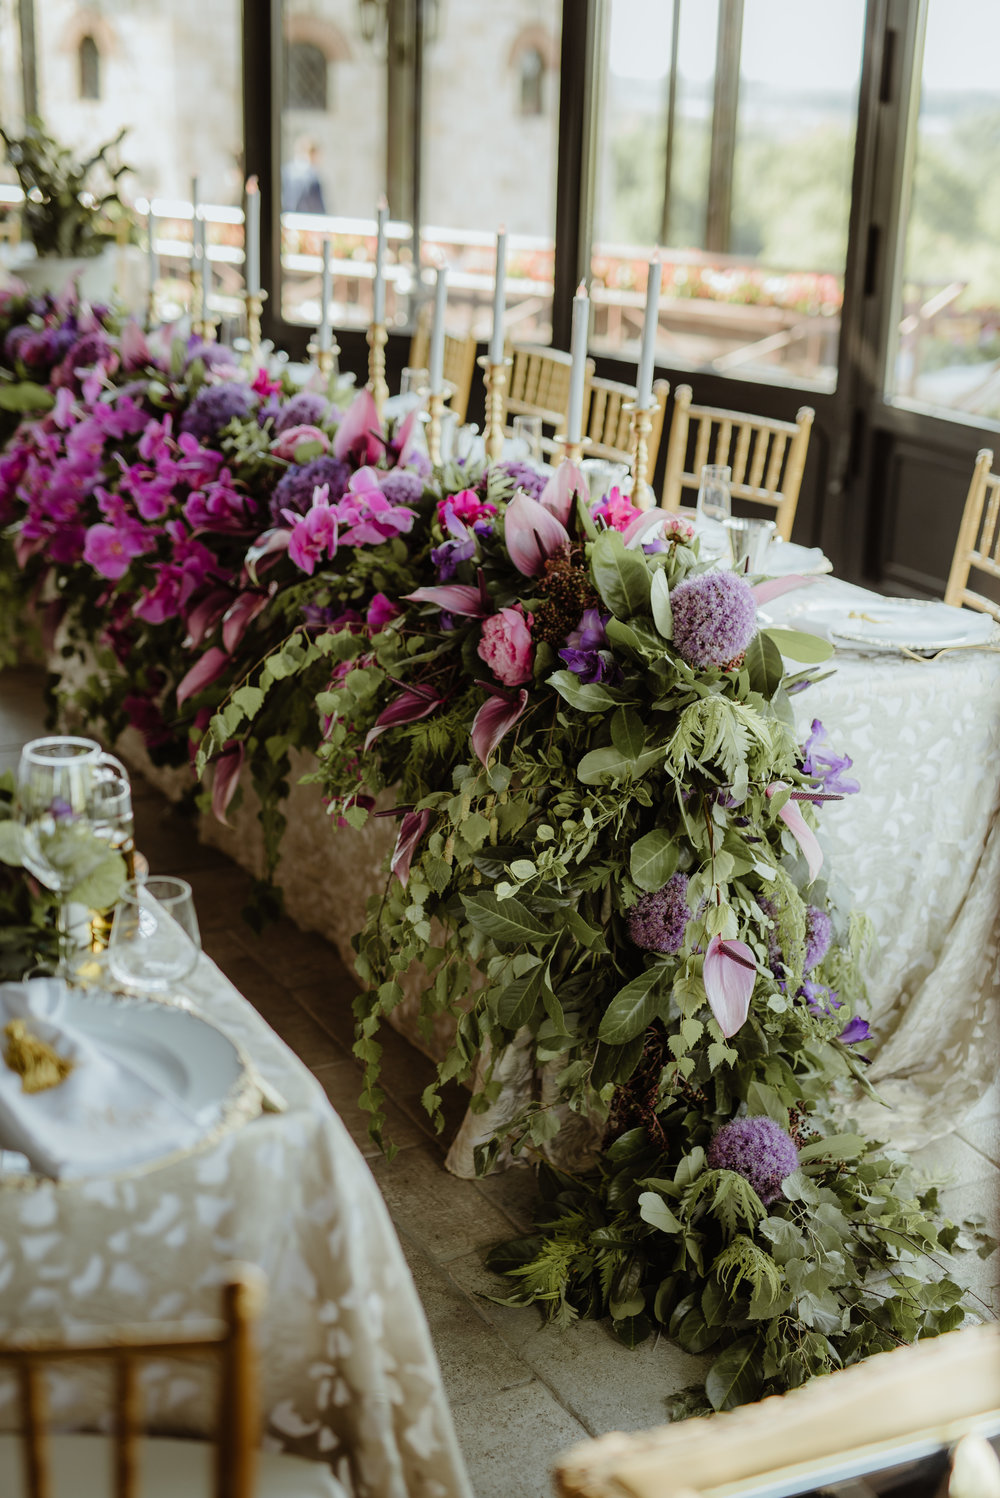 Fresh_flowers_bridal_table_pink_purple_candles_candelabras_luxury_linen.jpg